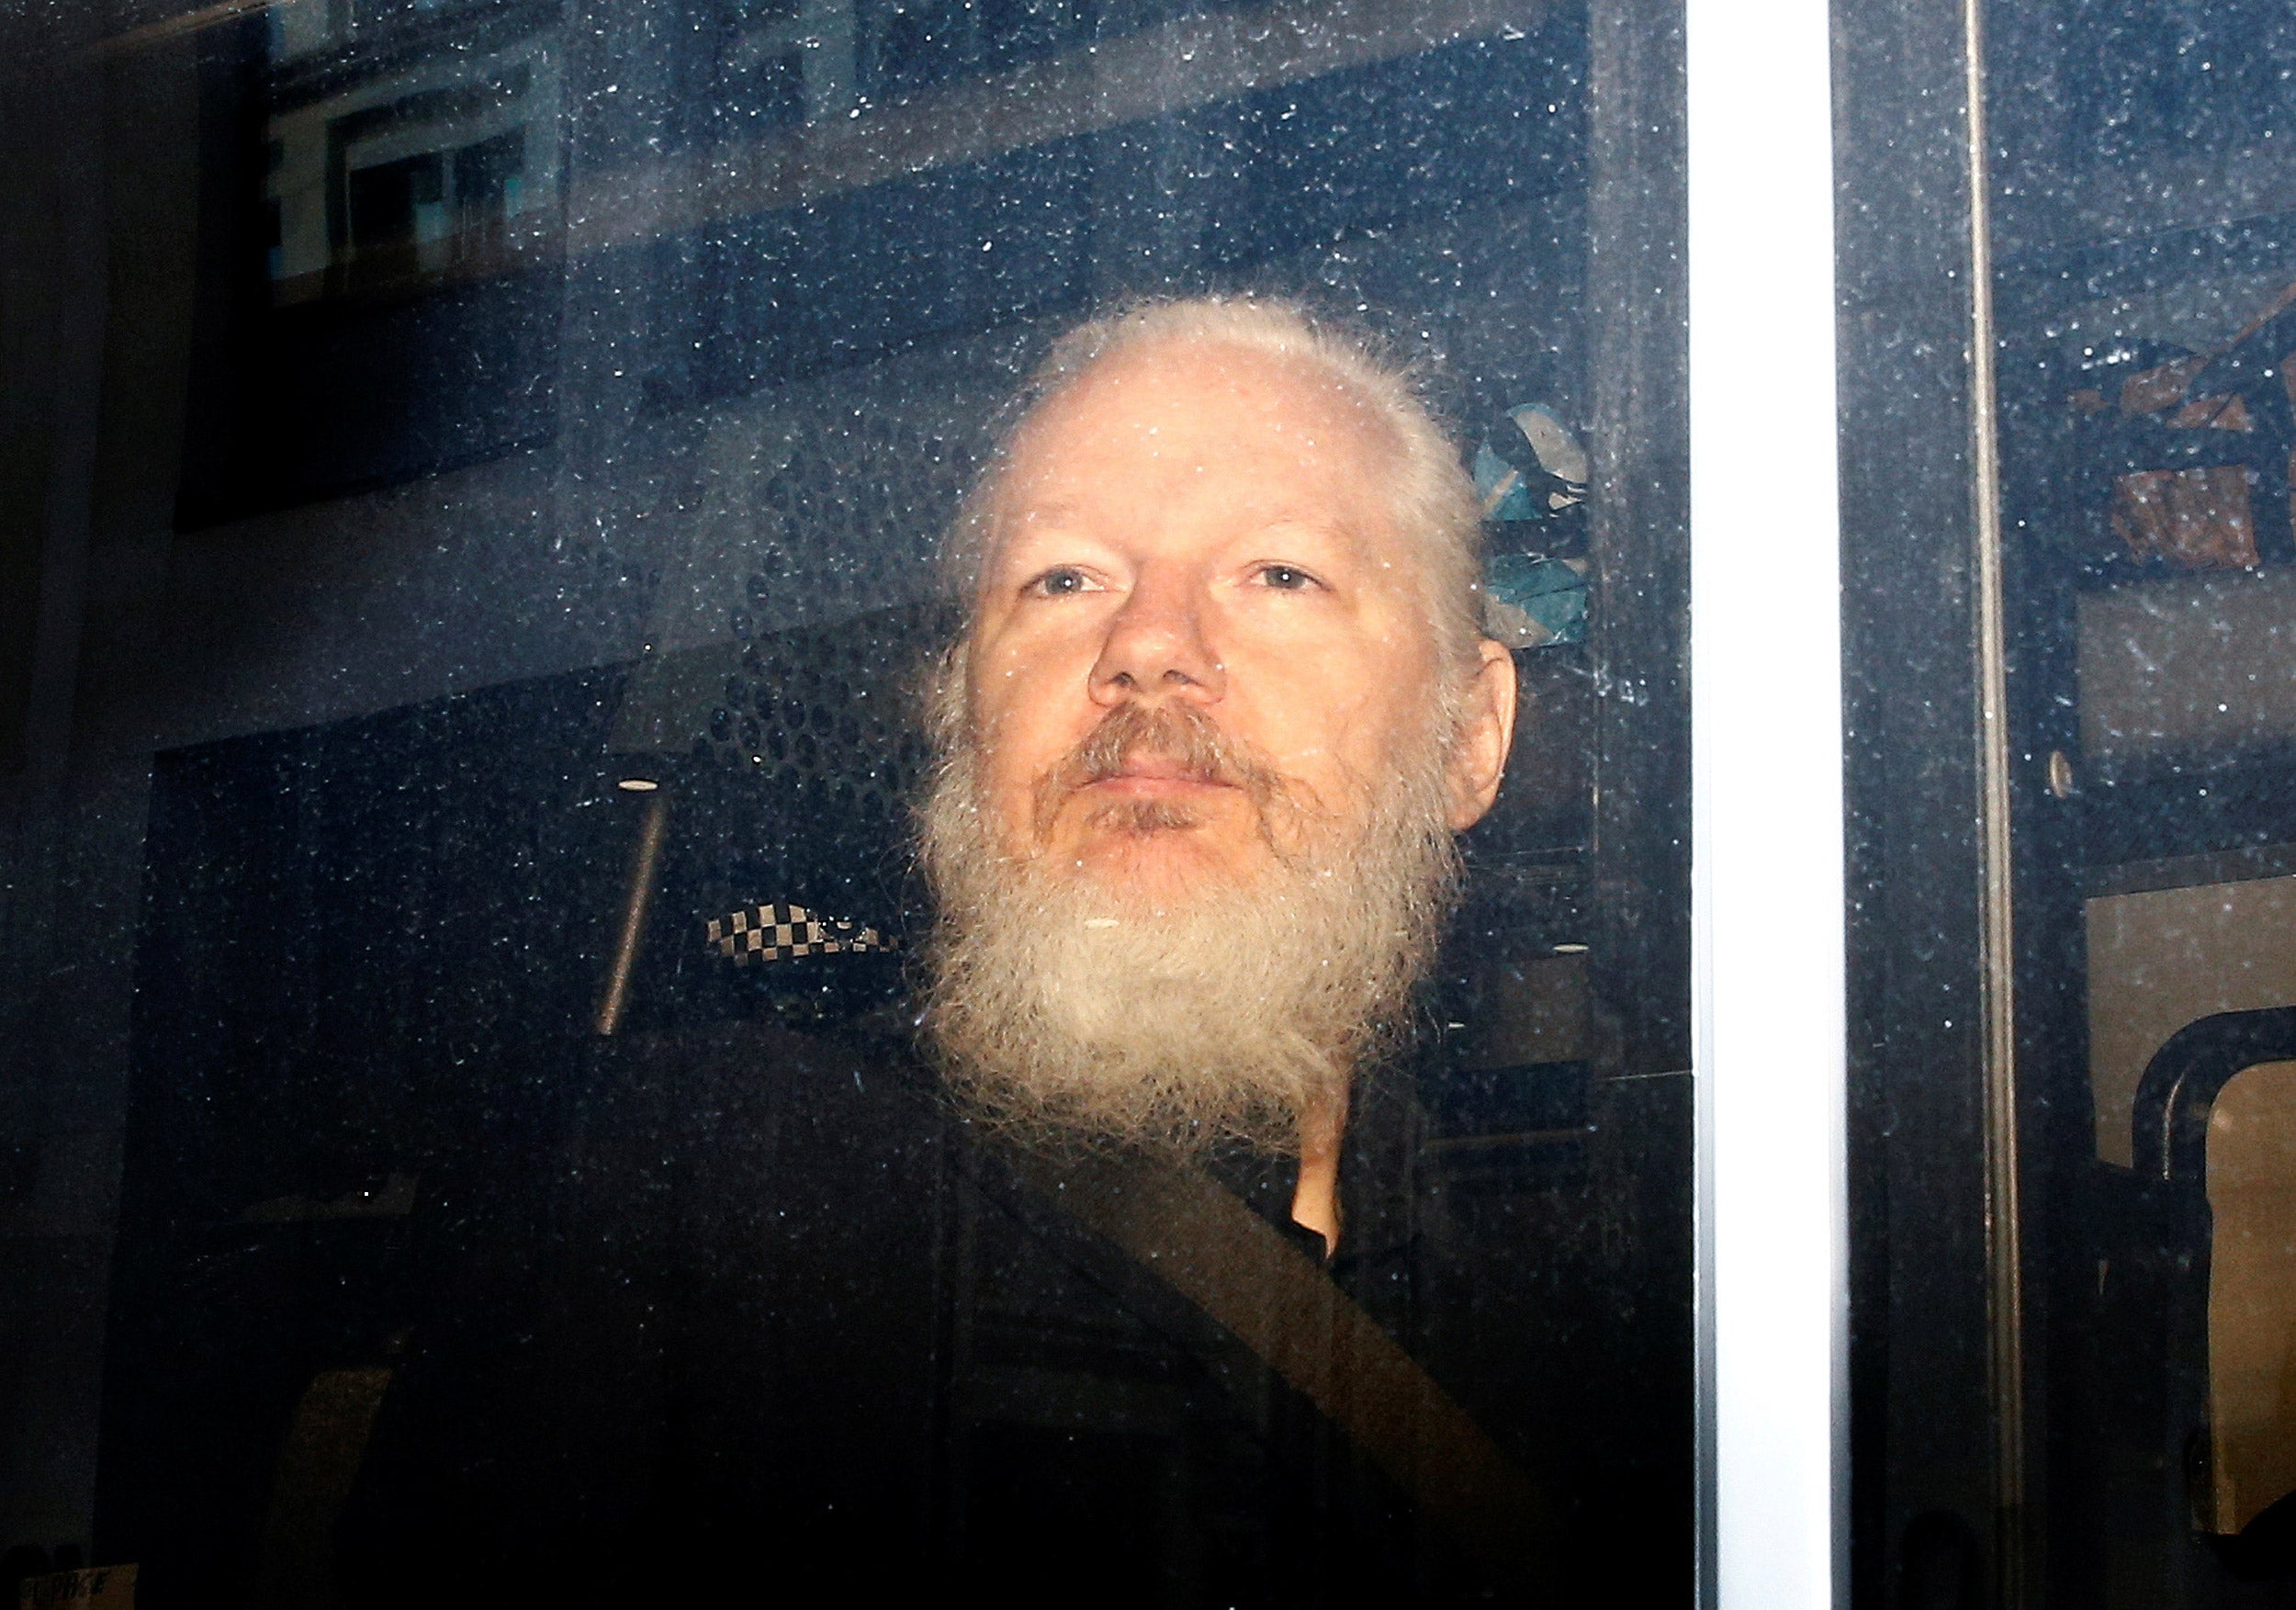 Julian Assange in a police van.